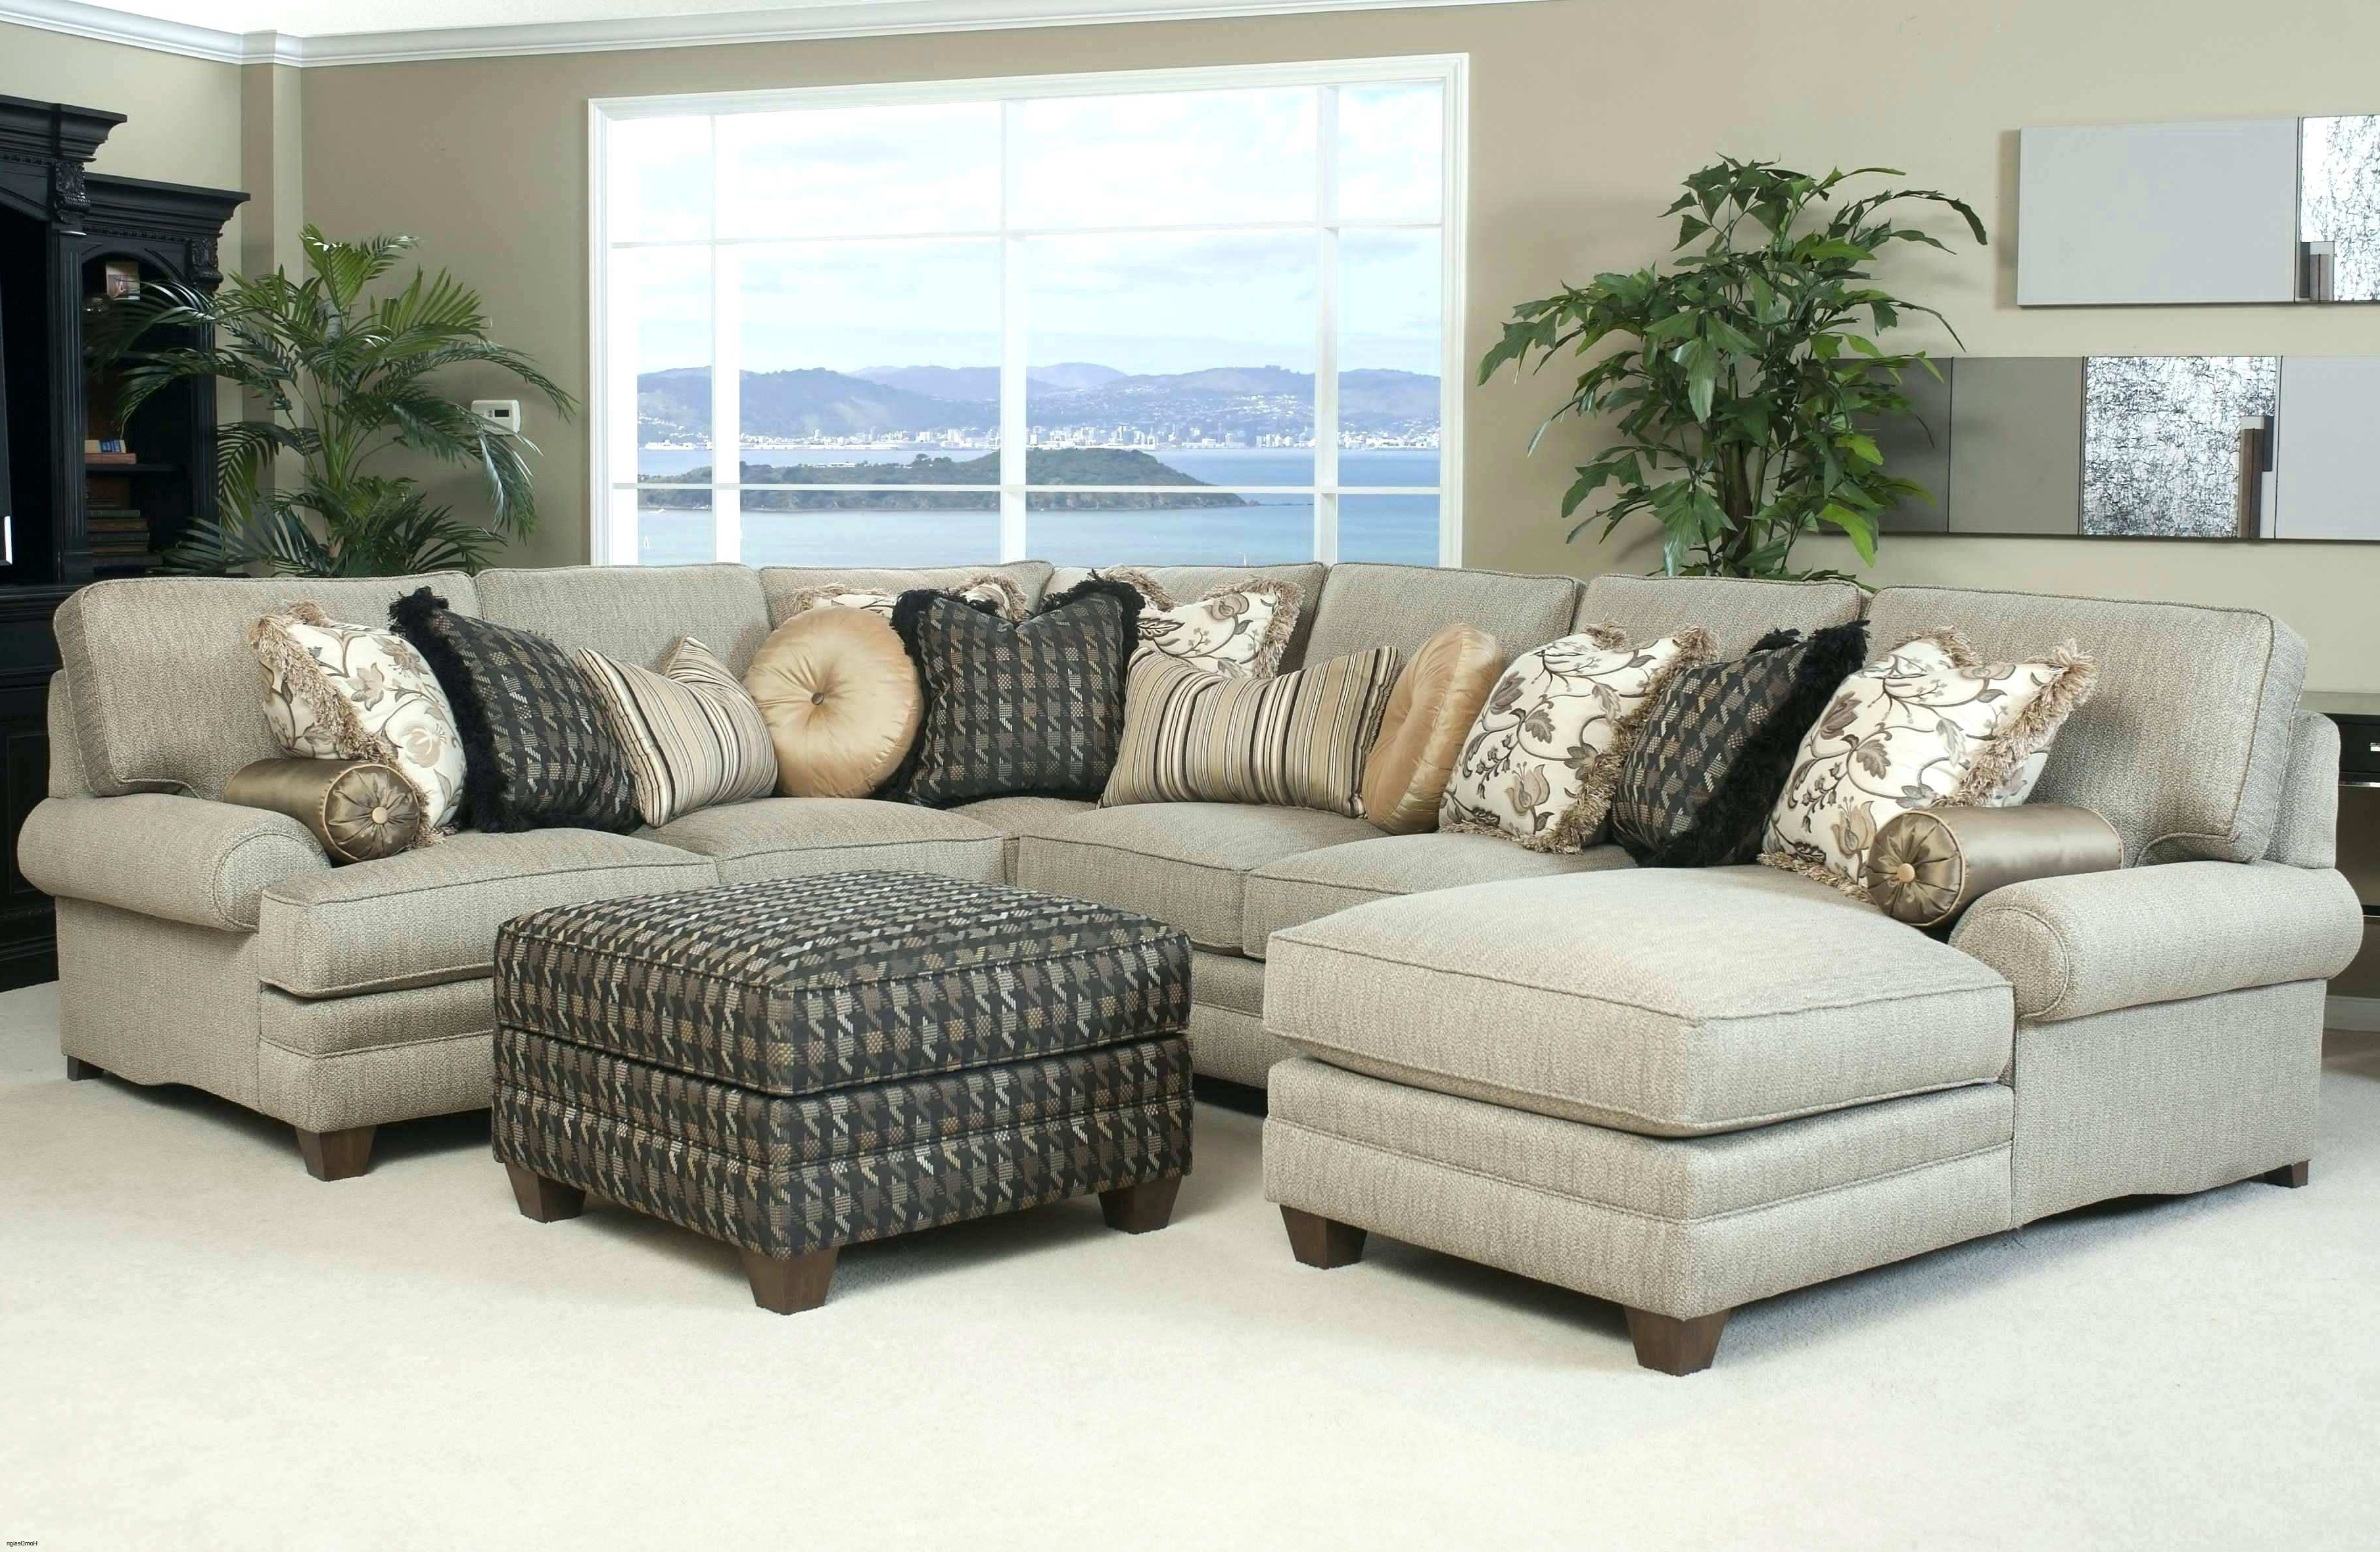 Contemporary Sectional With Chaise Lovely Exklusive Couch Genial In Famous Arrowmask 2 Piece Sectionals With Laf Chaise (View 10 of 20)